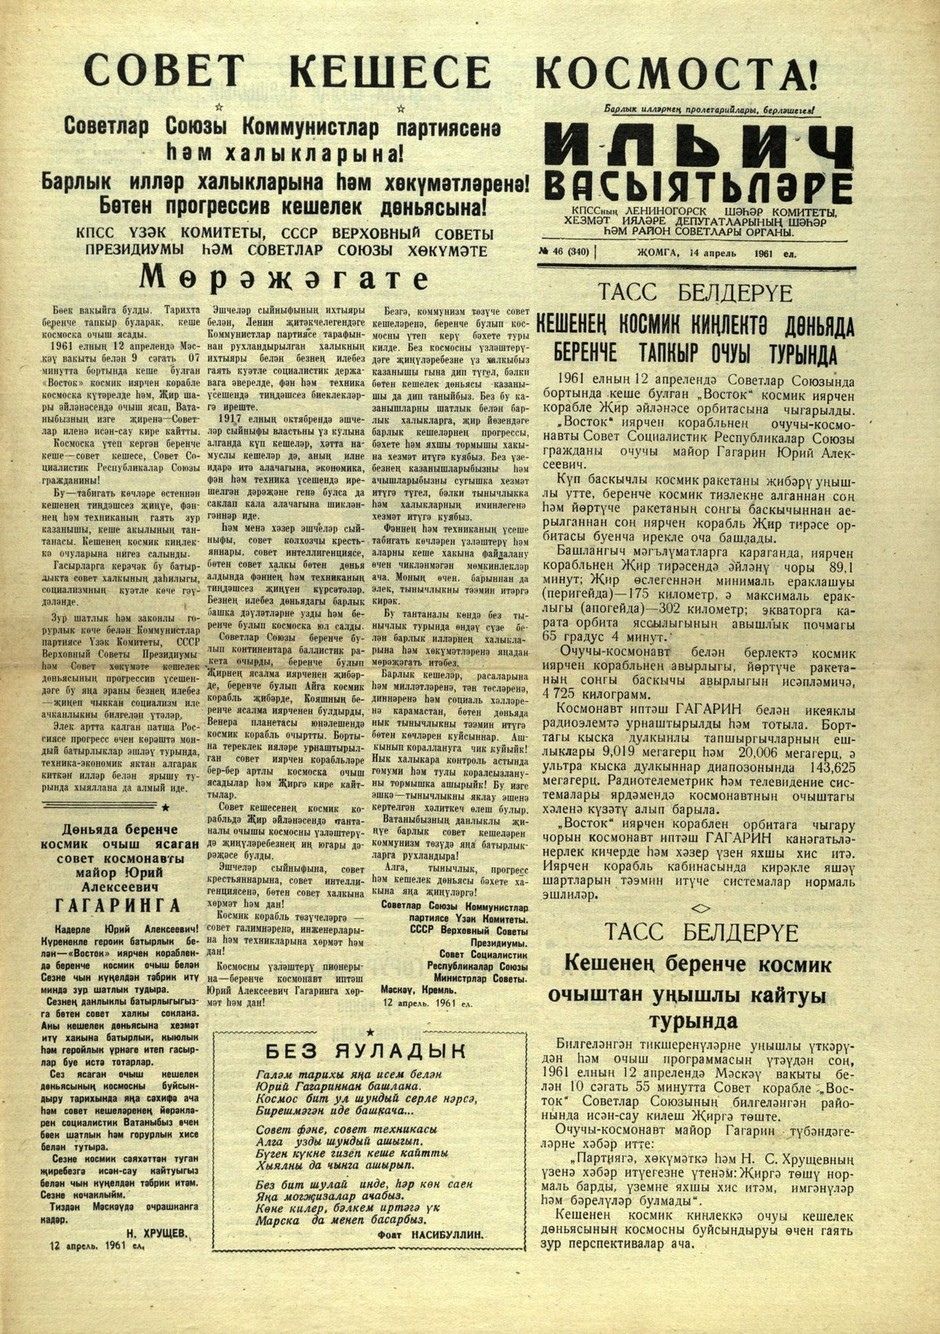 Tatarstan regional newspapers containing the information about the flight into space of Yuri Gagarin. April, 1961